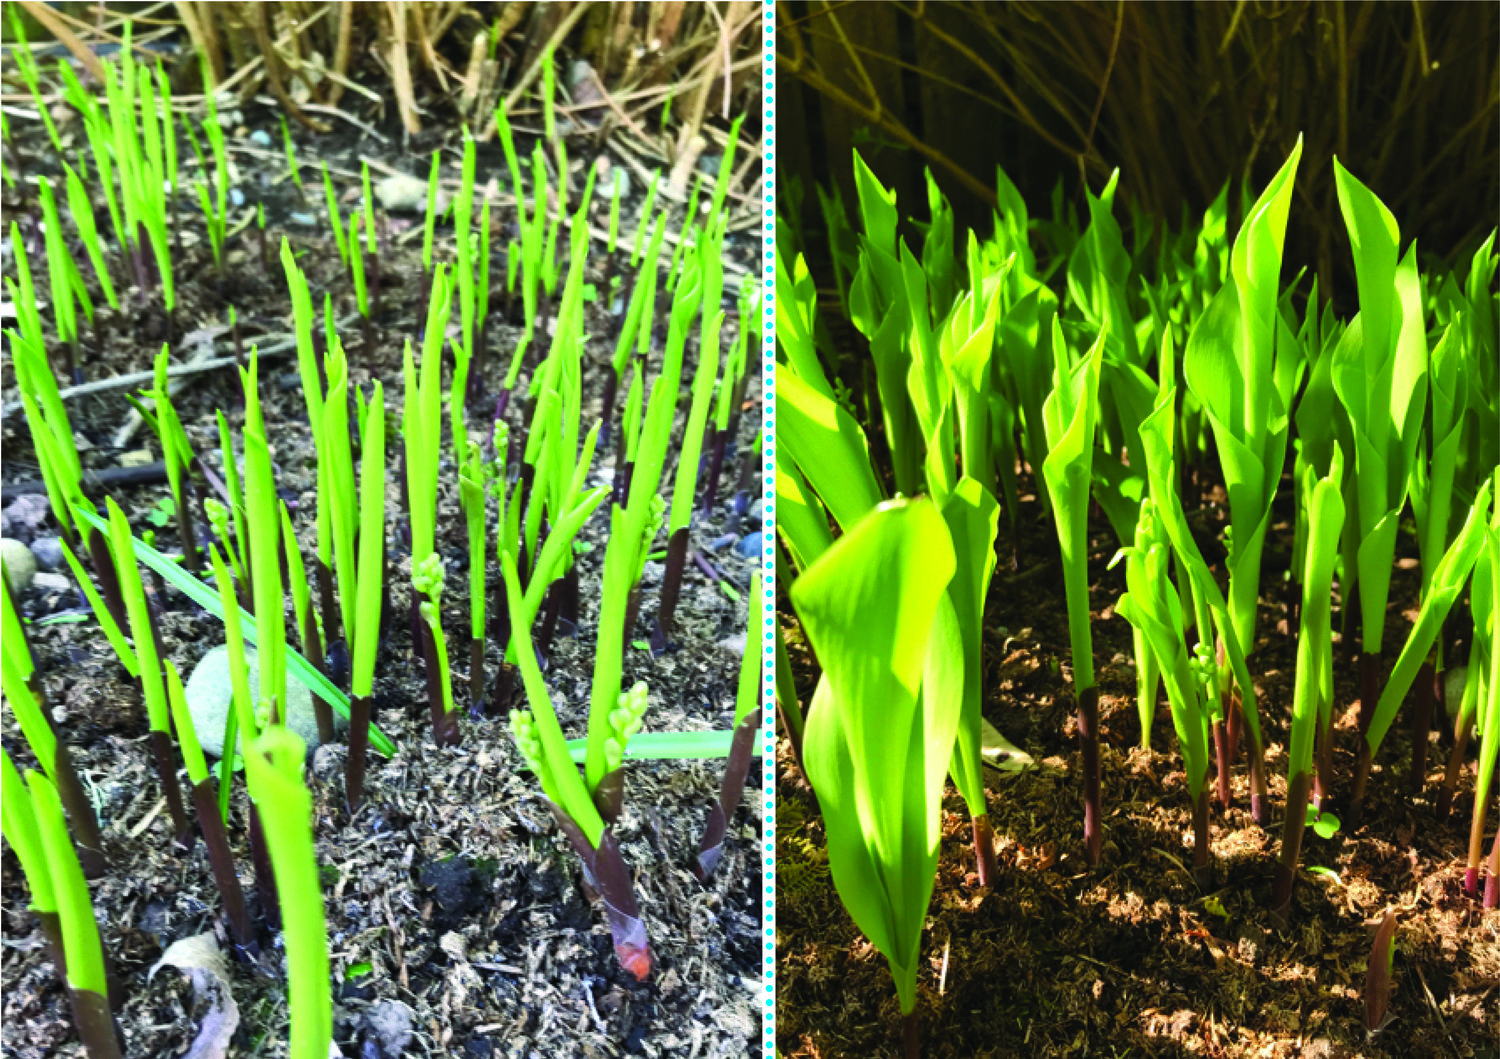 How fast the Lilies of the Valley grow! The image on the left was made on Monday; the image on the right was taken on Friday morning.